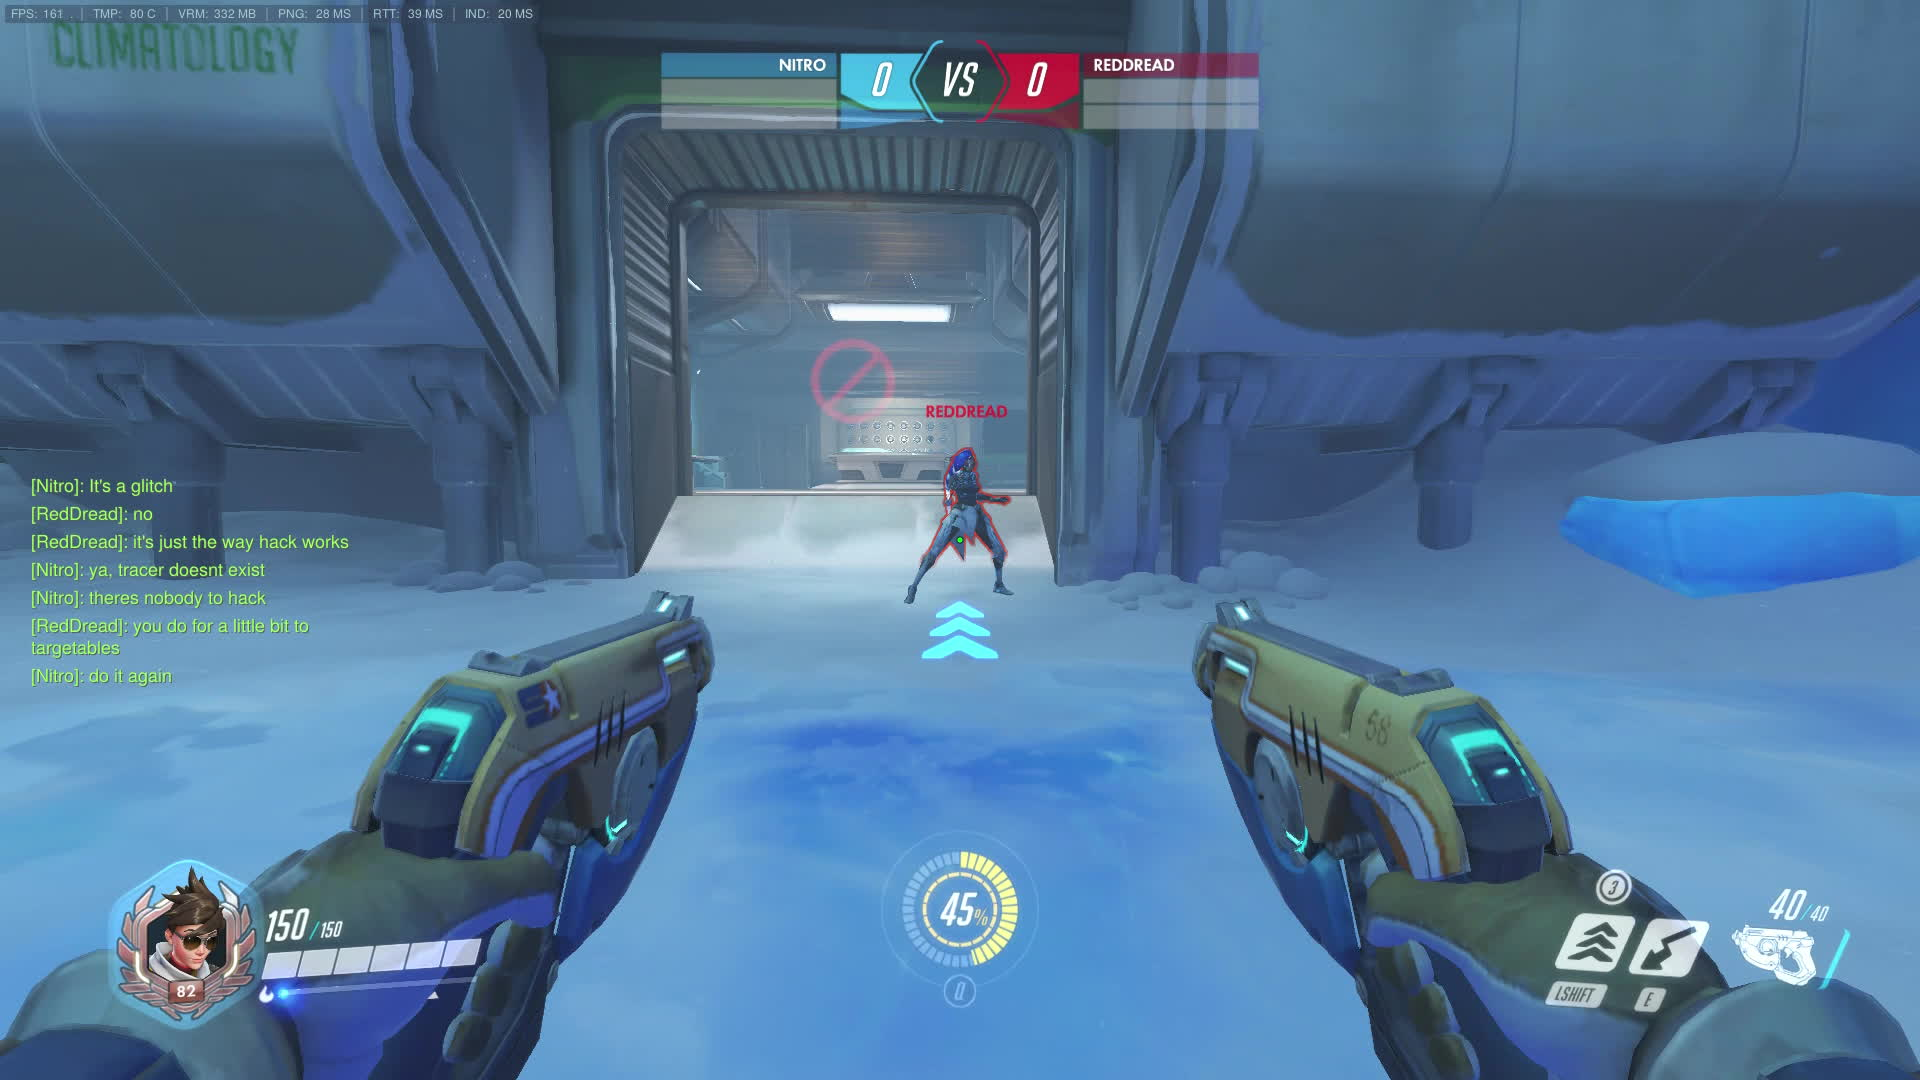 Competitiveoverwatch, Tracer/Sombra glitch - Still hacking during recall GIFs